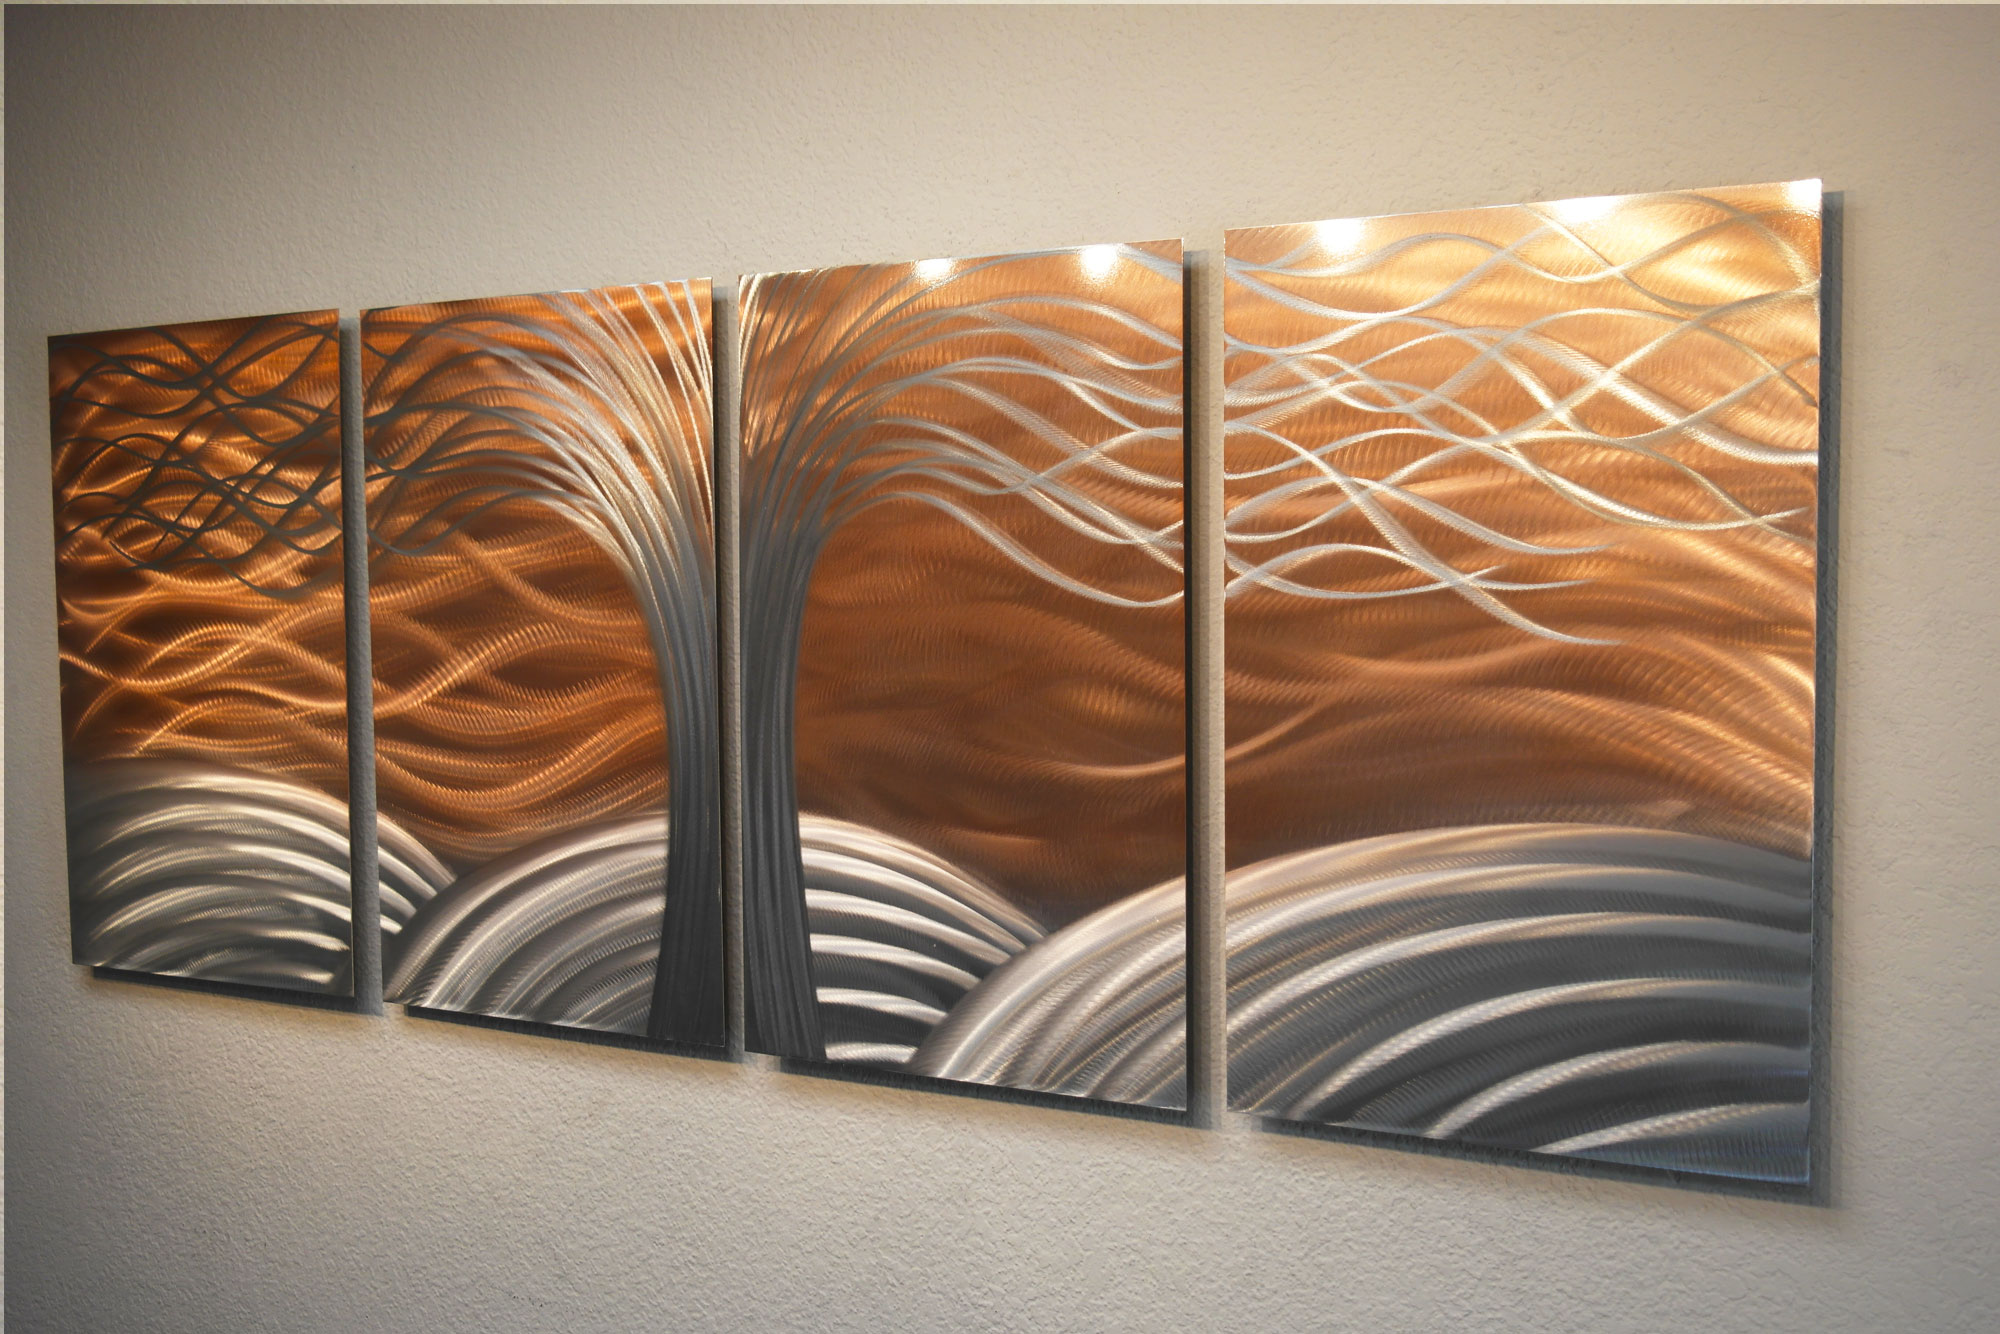 Copper Wall Art tree of life bright copper - metal wall art abstract sculpture